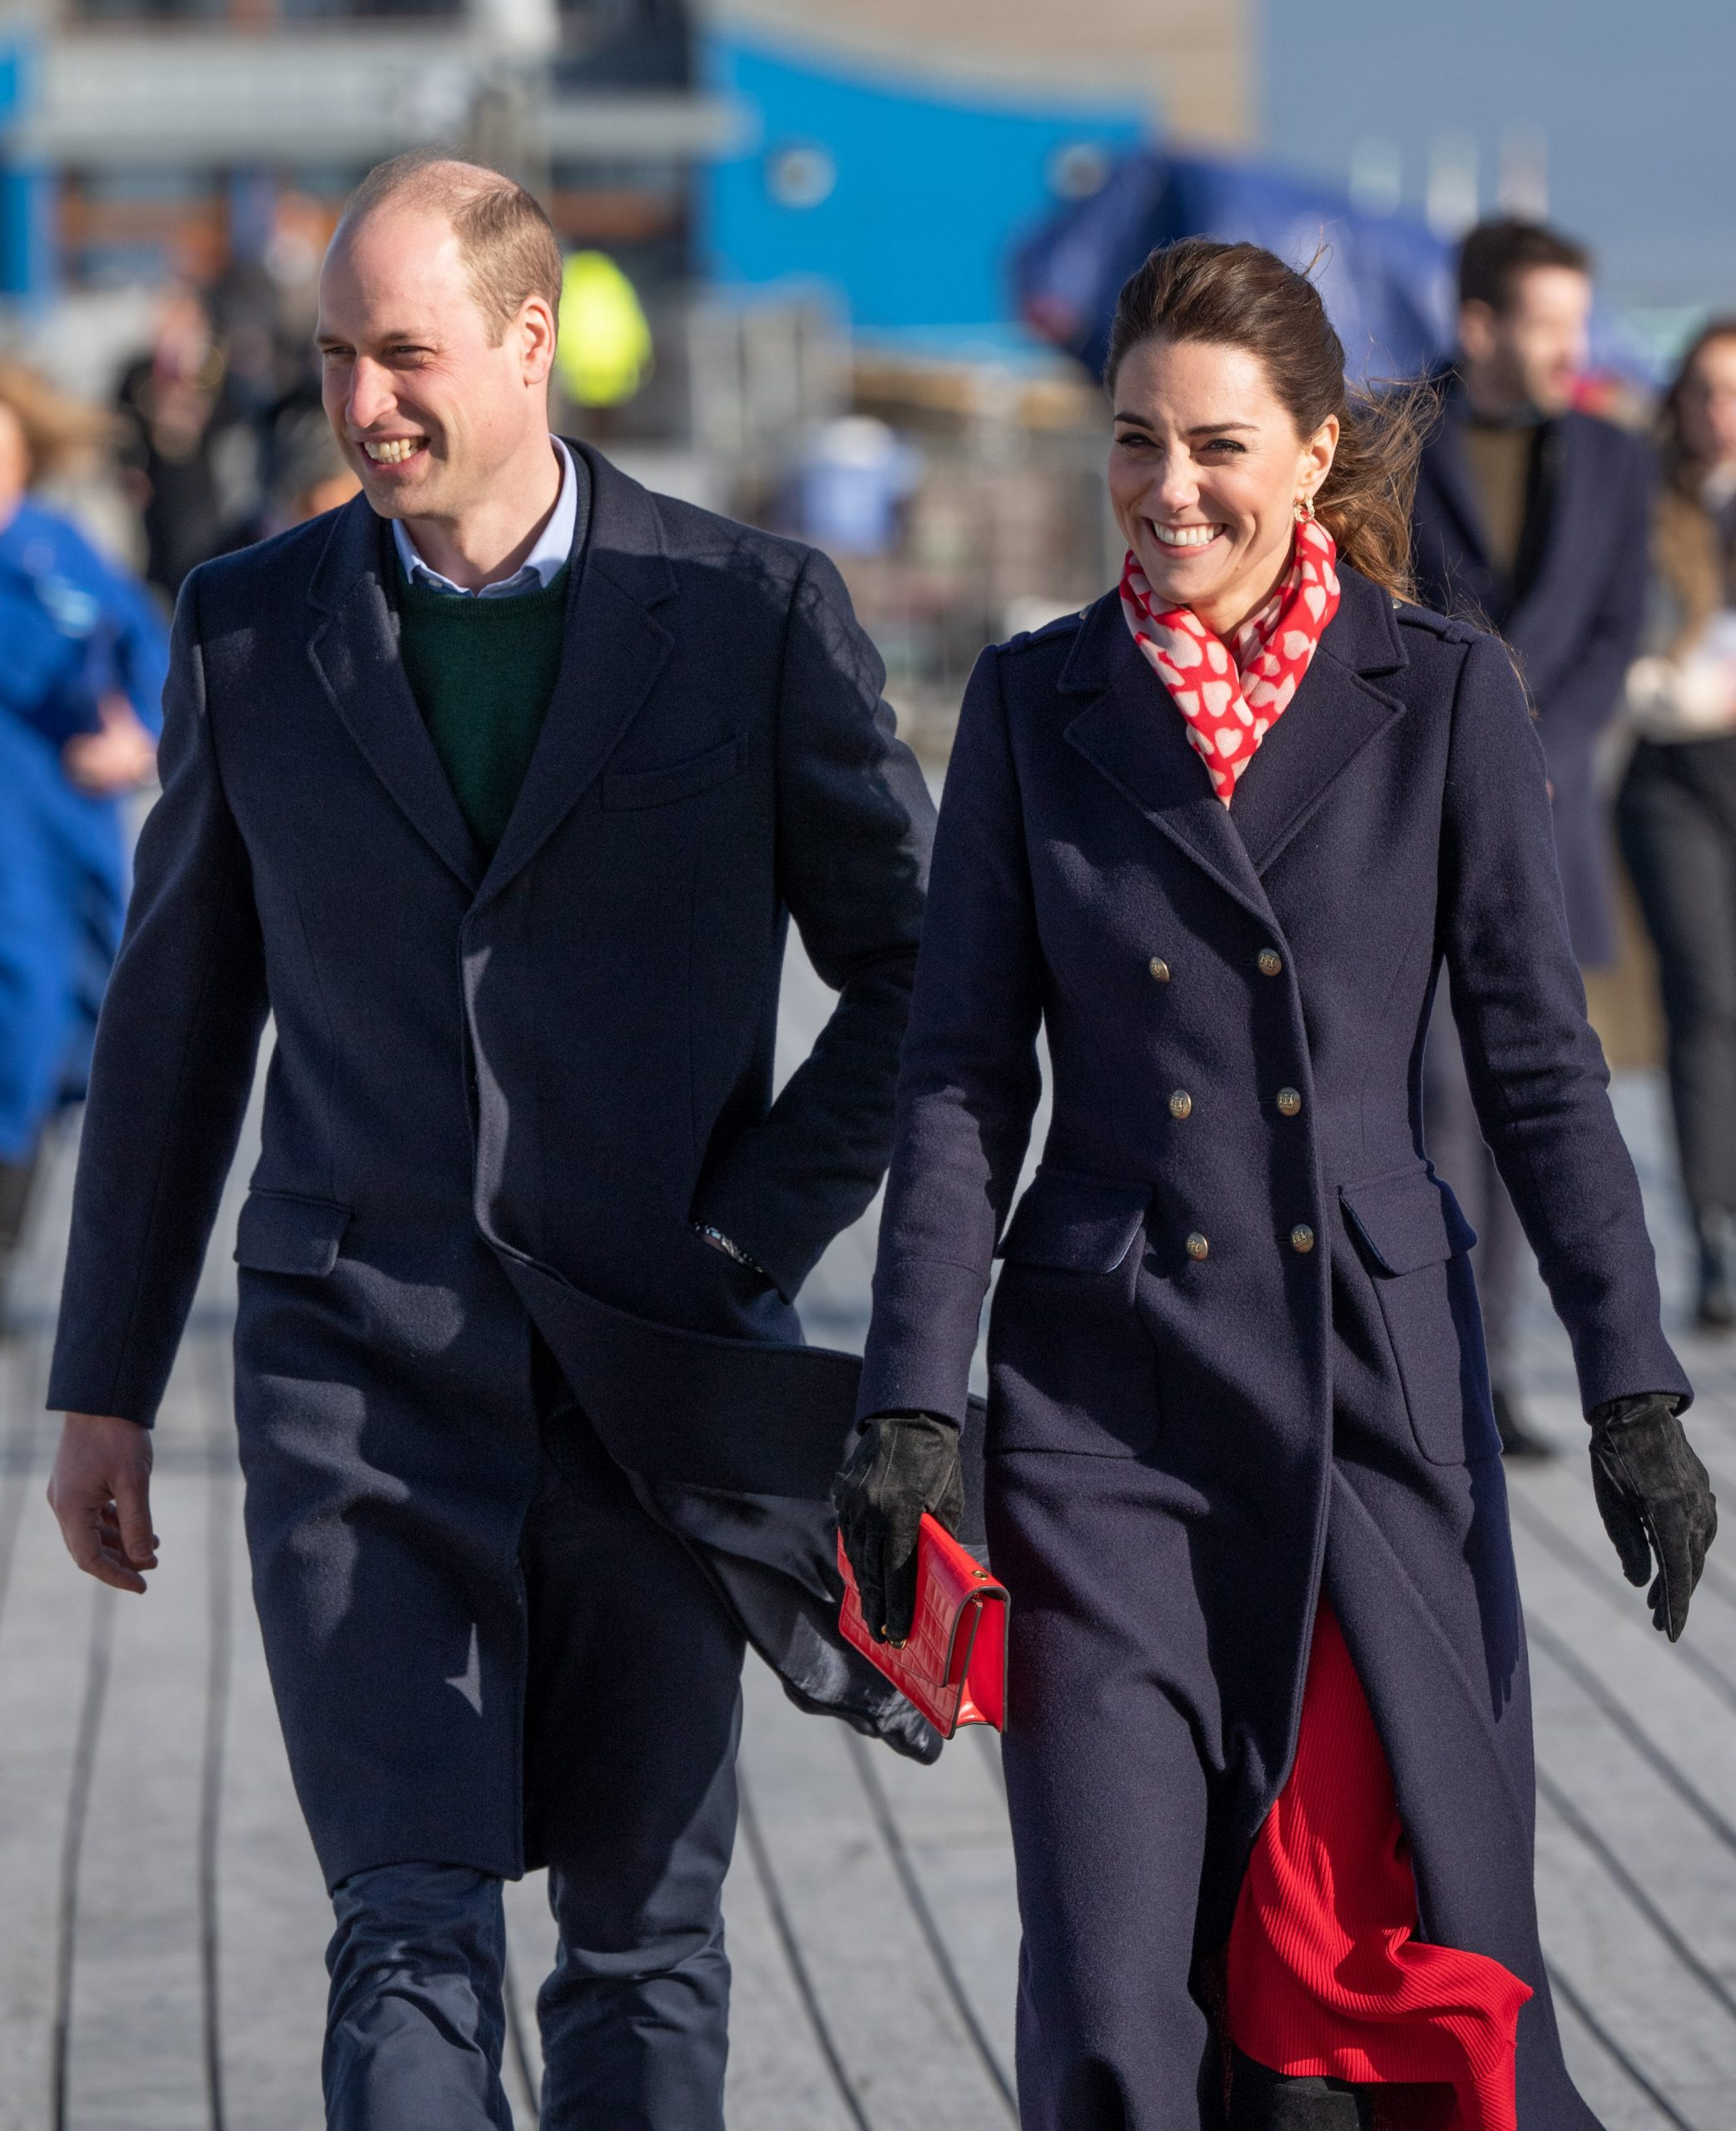 William and Kate will spend three days in Ireland